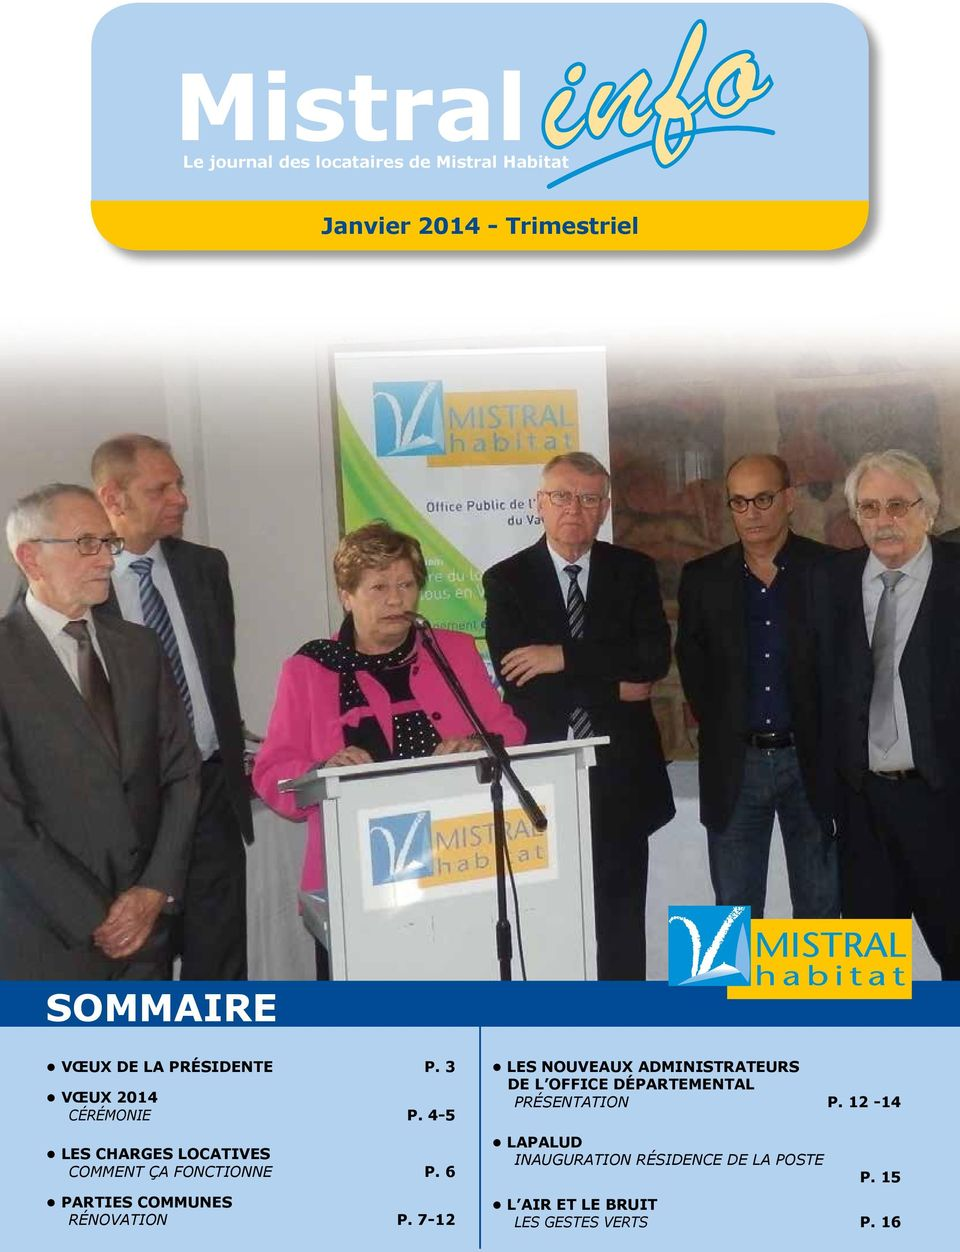 6 PARTIES COMMUNES RÉNOVATION P.